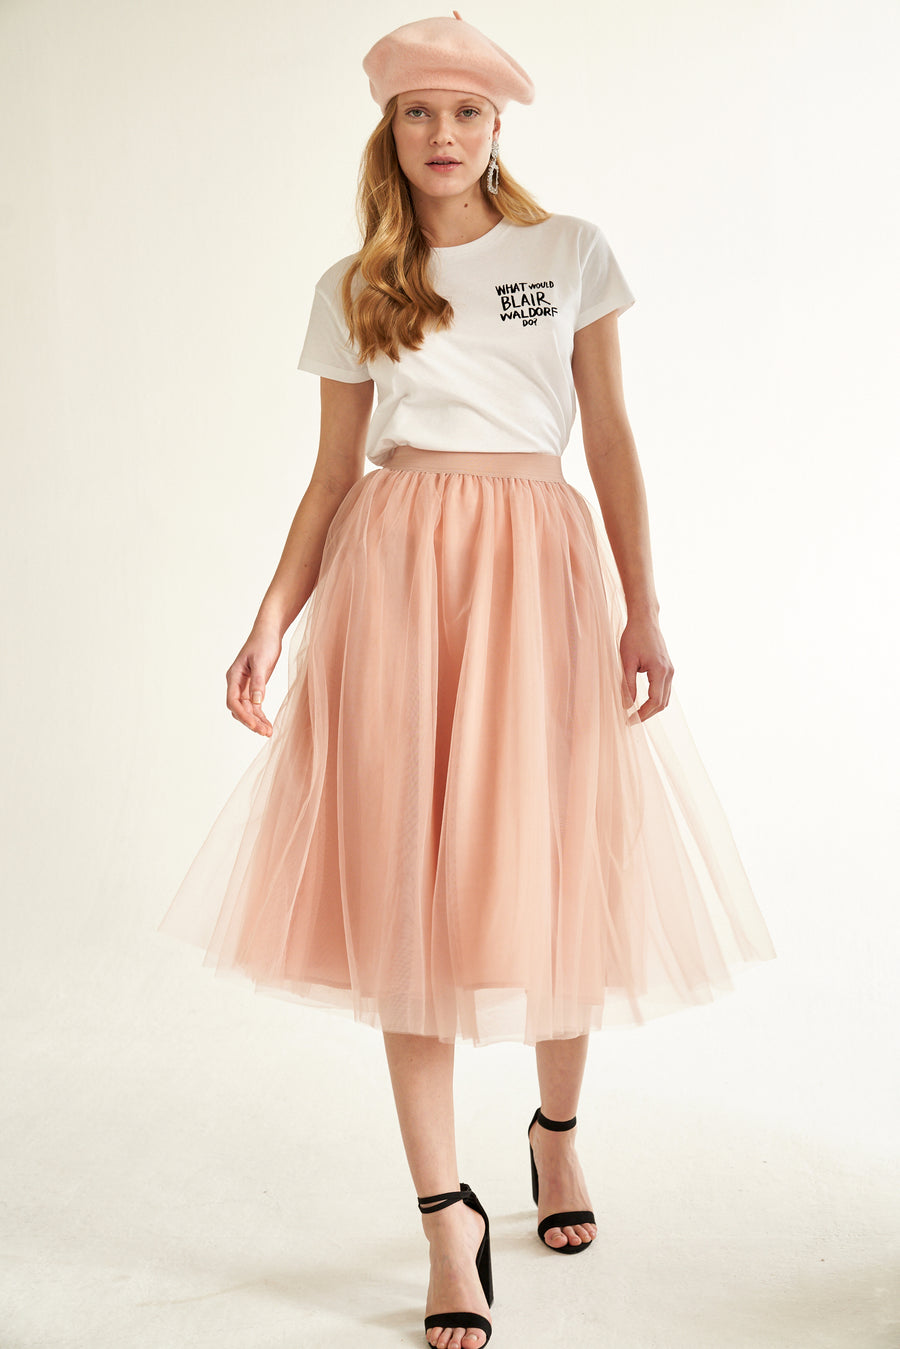 Gossengold - ladies tulle skirt - pink